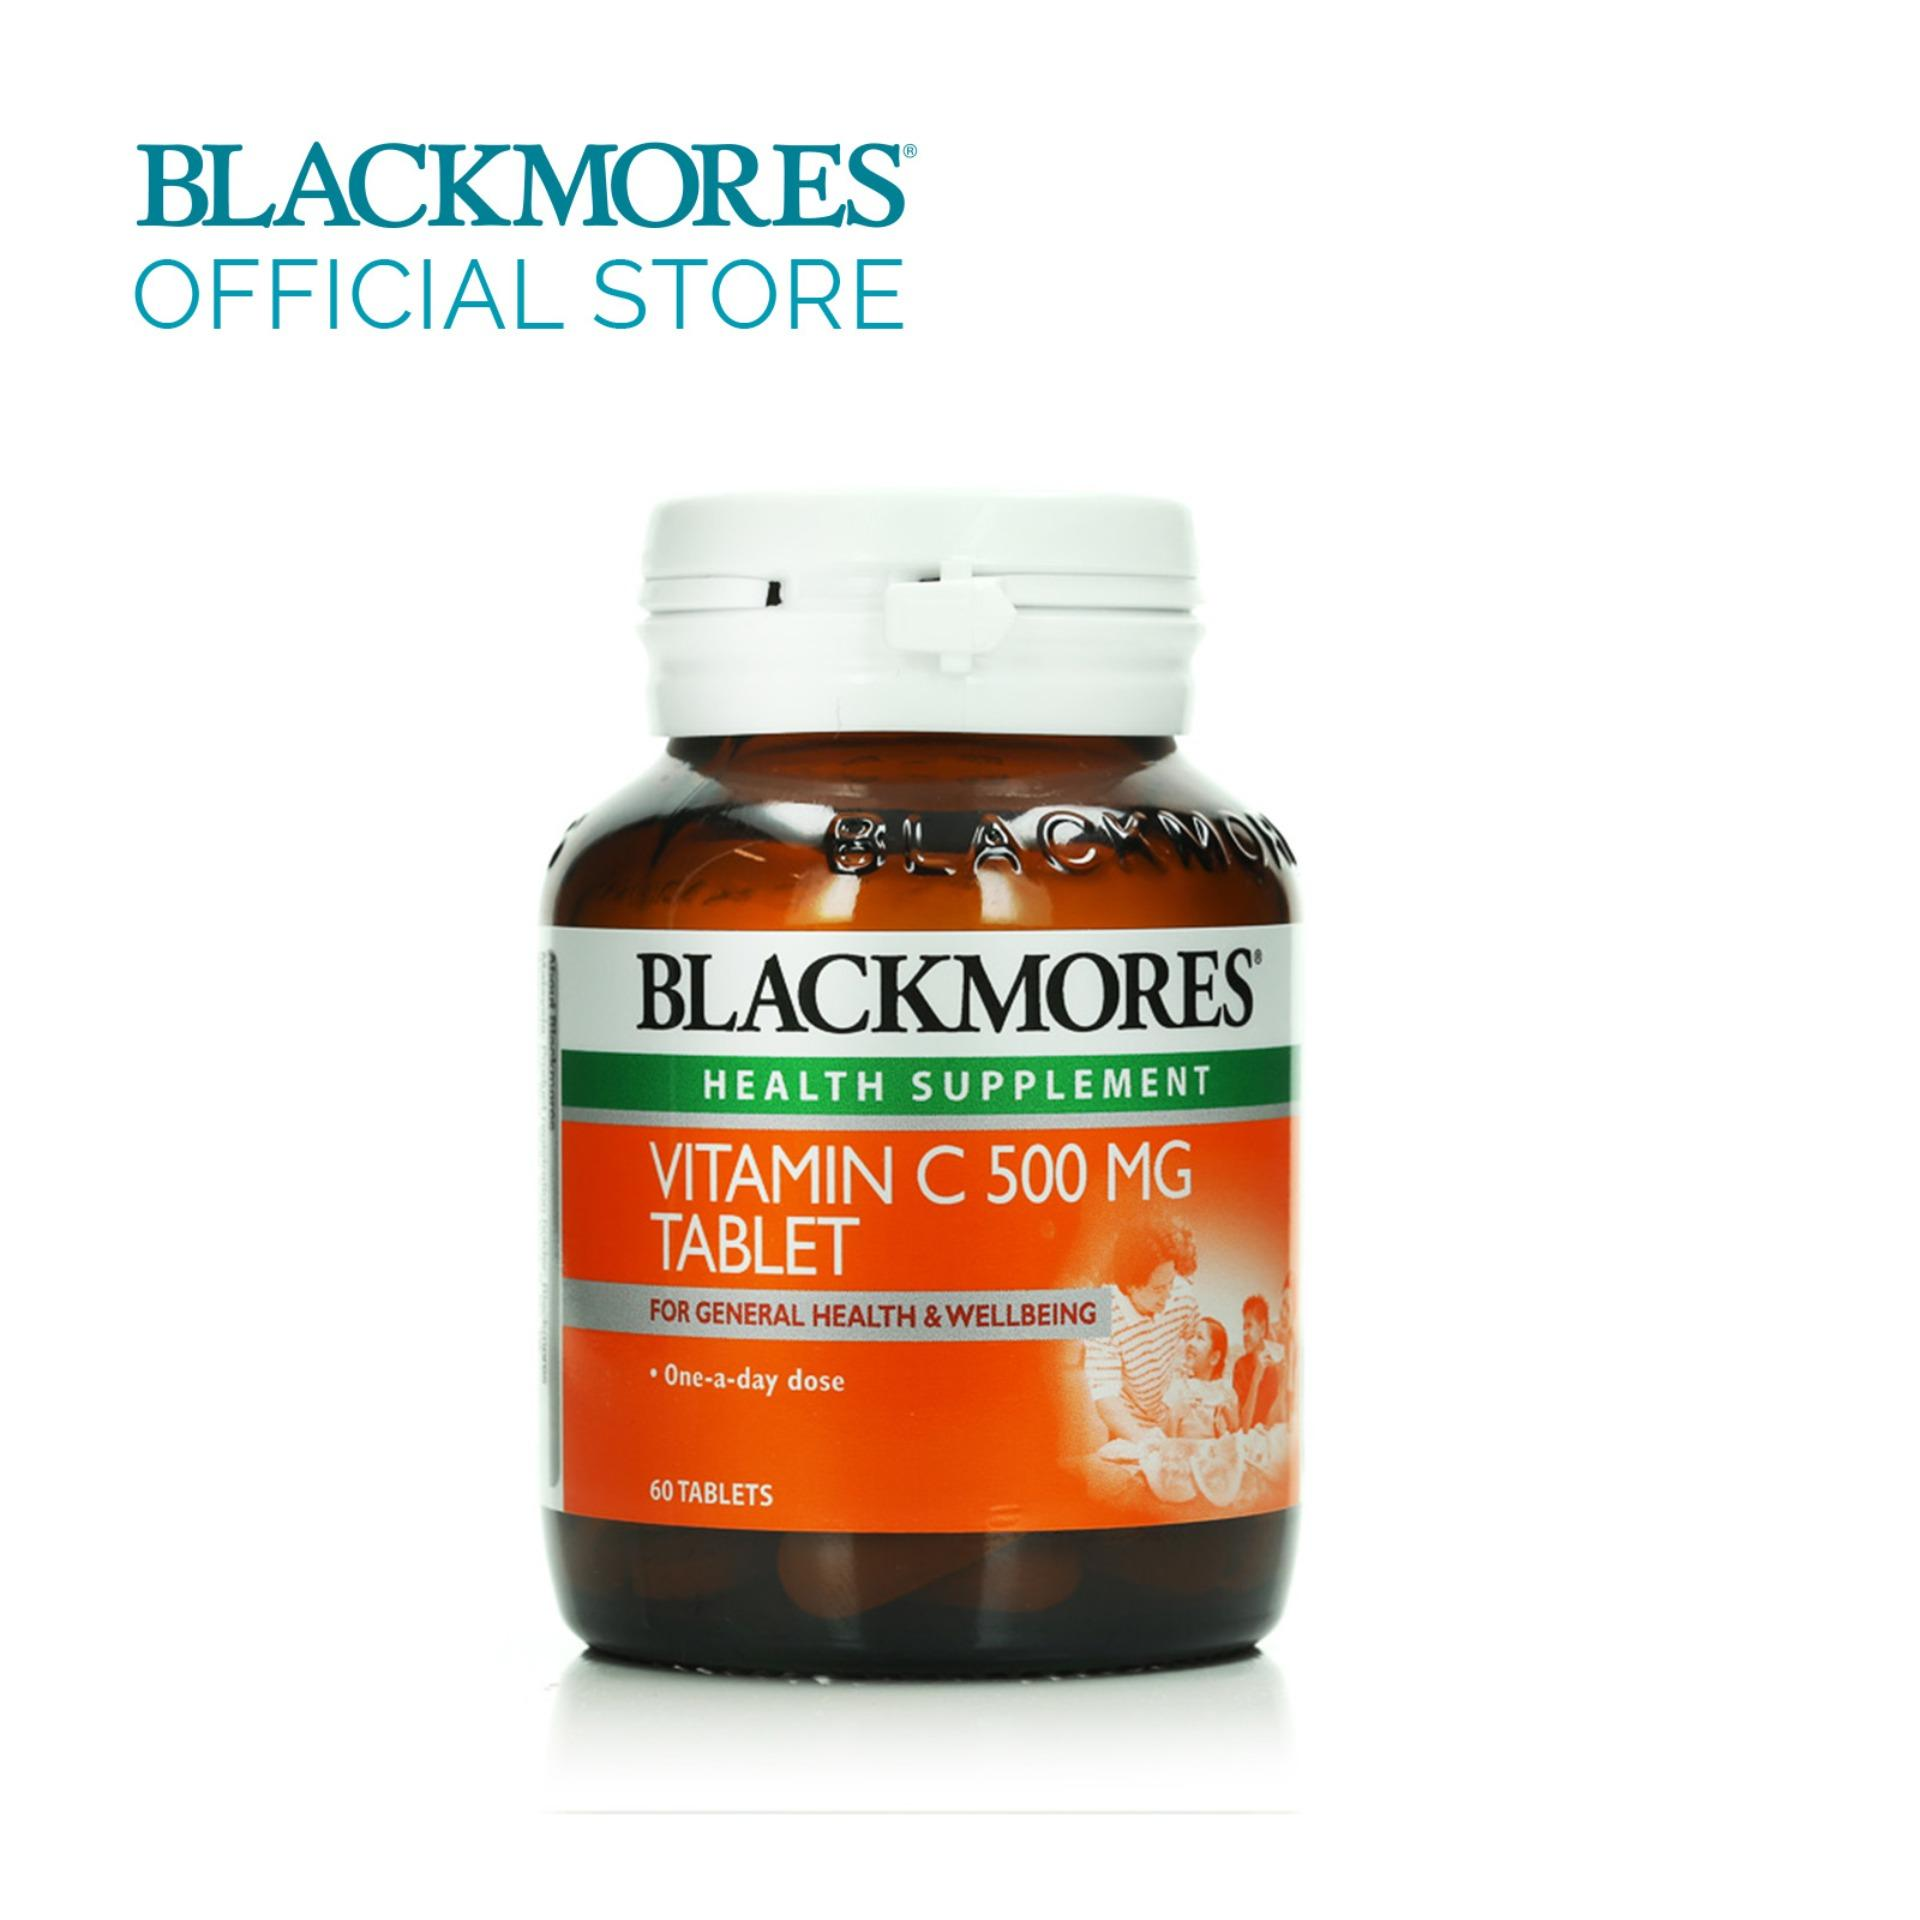 Blackmores Vitamin C 500 60tabs By Blackmores Official Store.